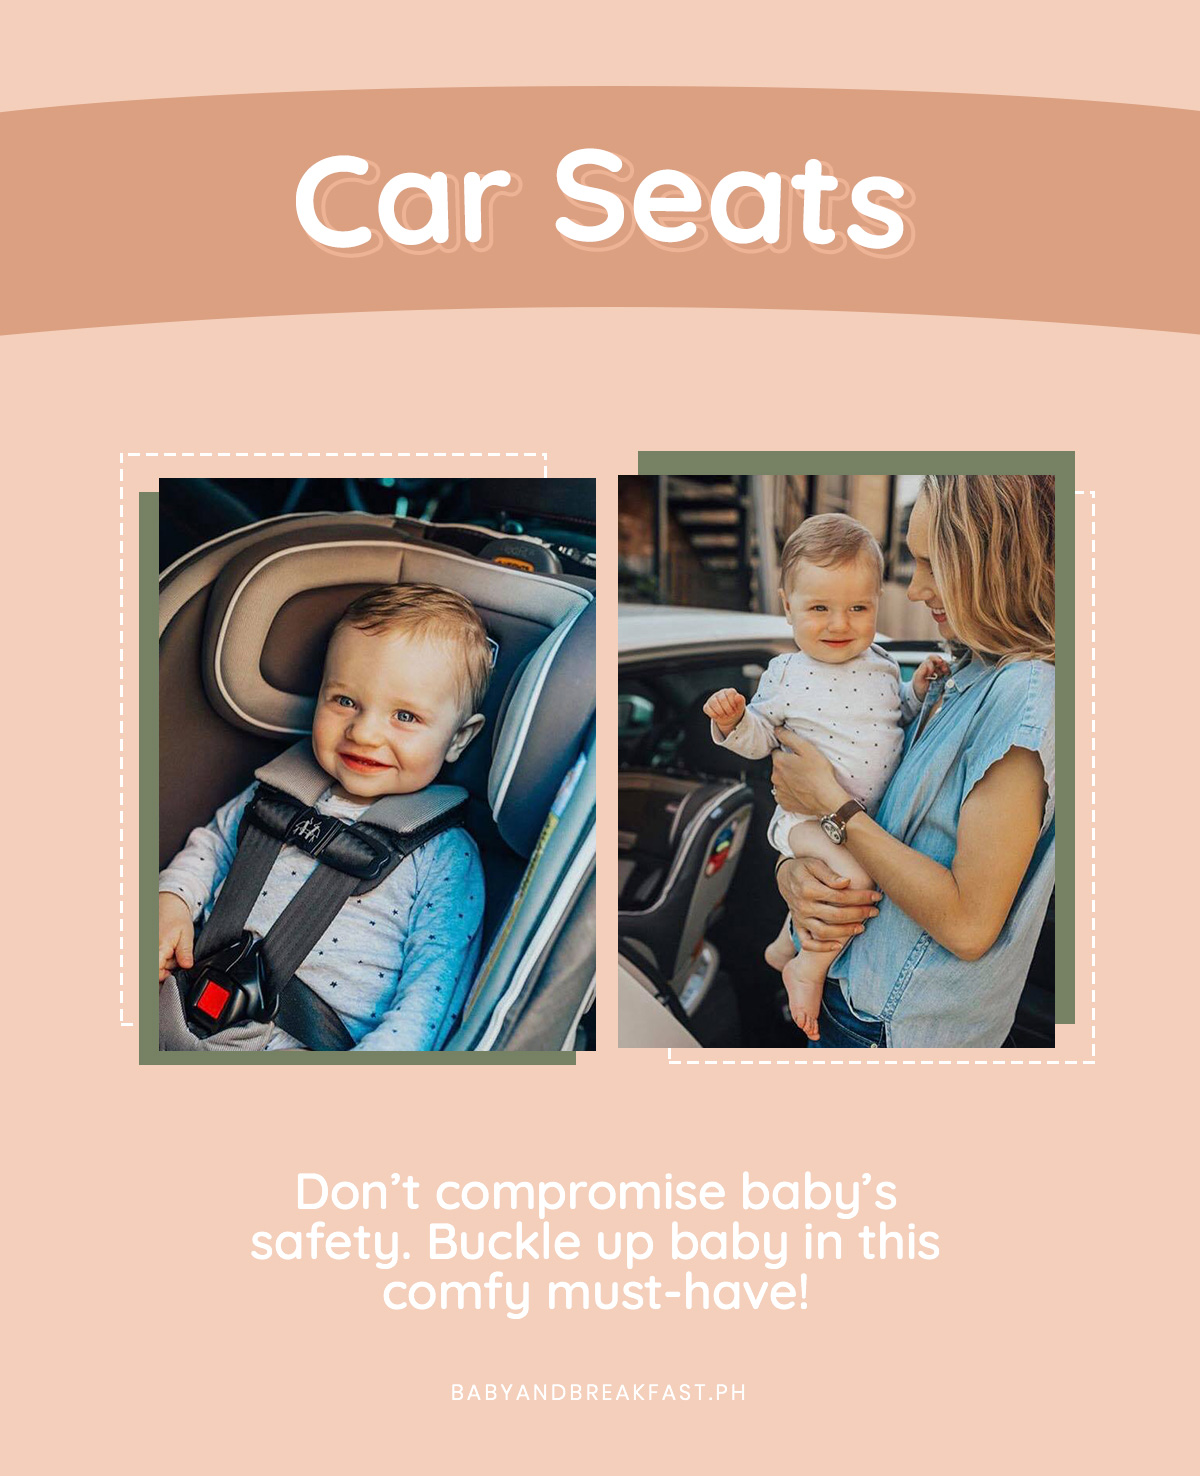 Car Seats Don't compromise baby's safety. Buckle up baby in this comfy must-have!